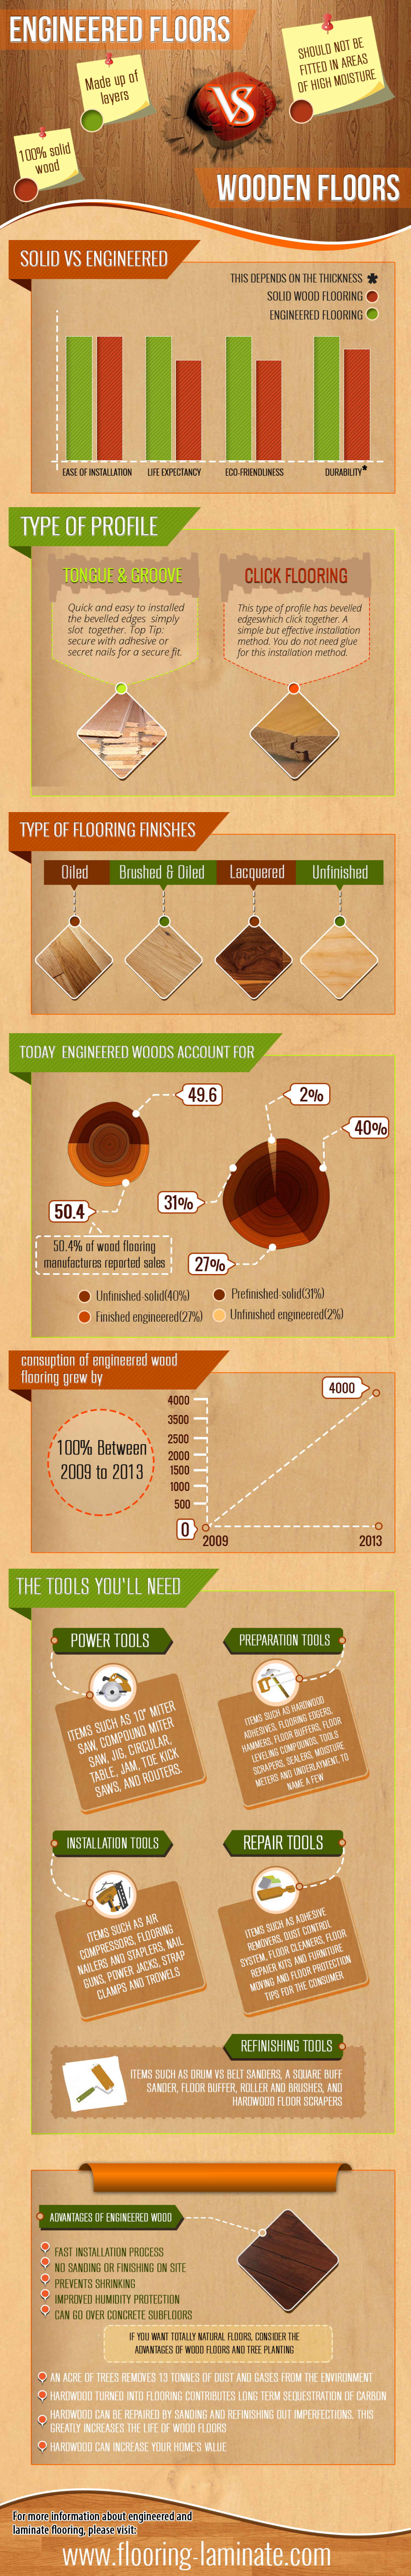 Engineered Floors vs Wooden Floors Infographic